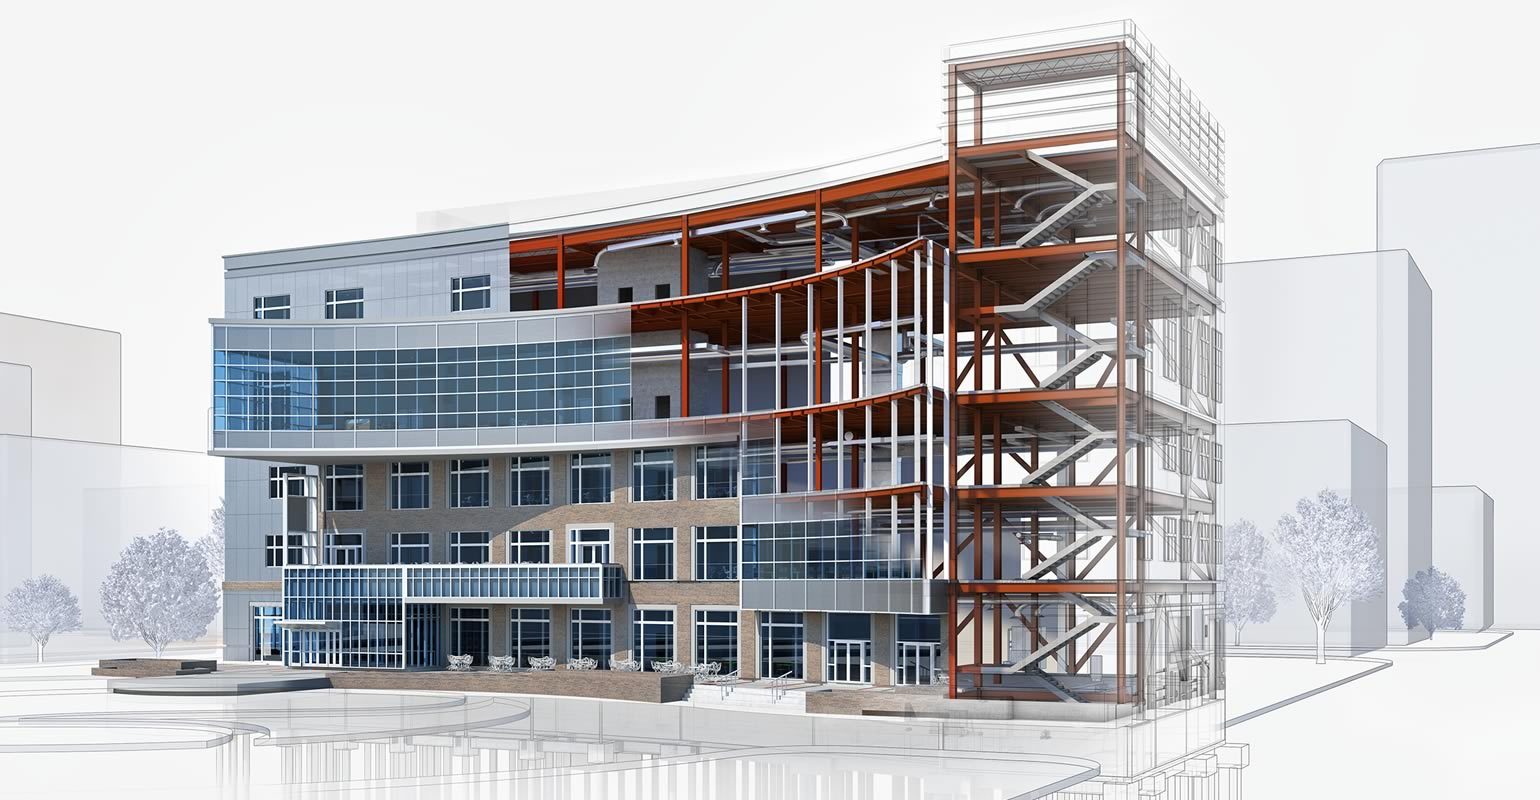 Check out our BIM / CAD Support services!